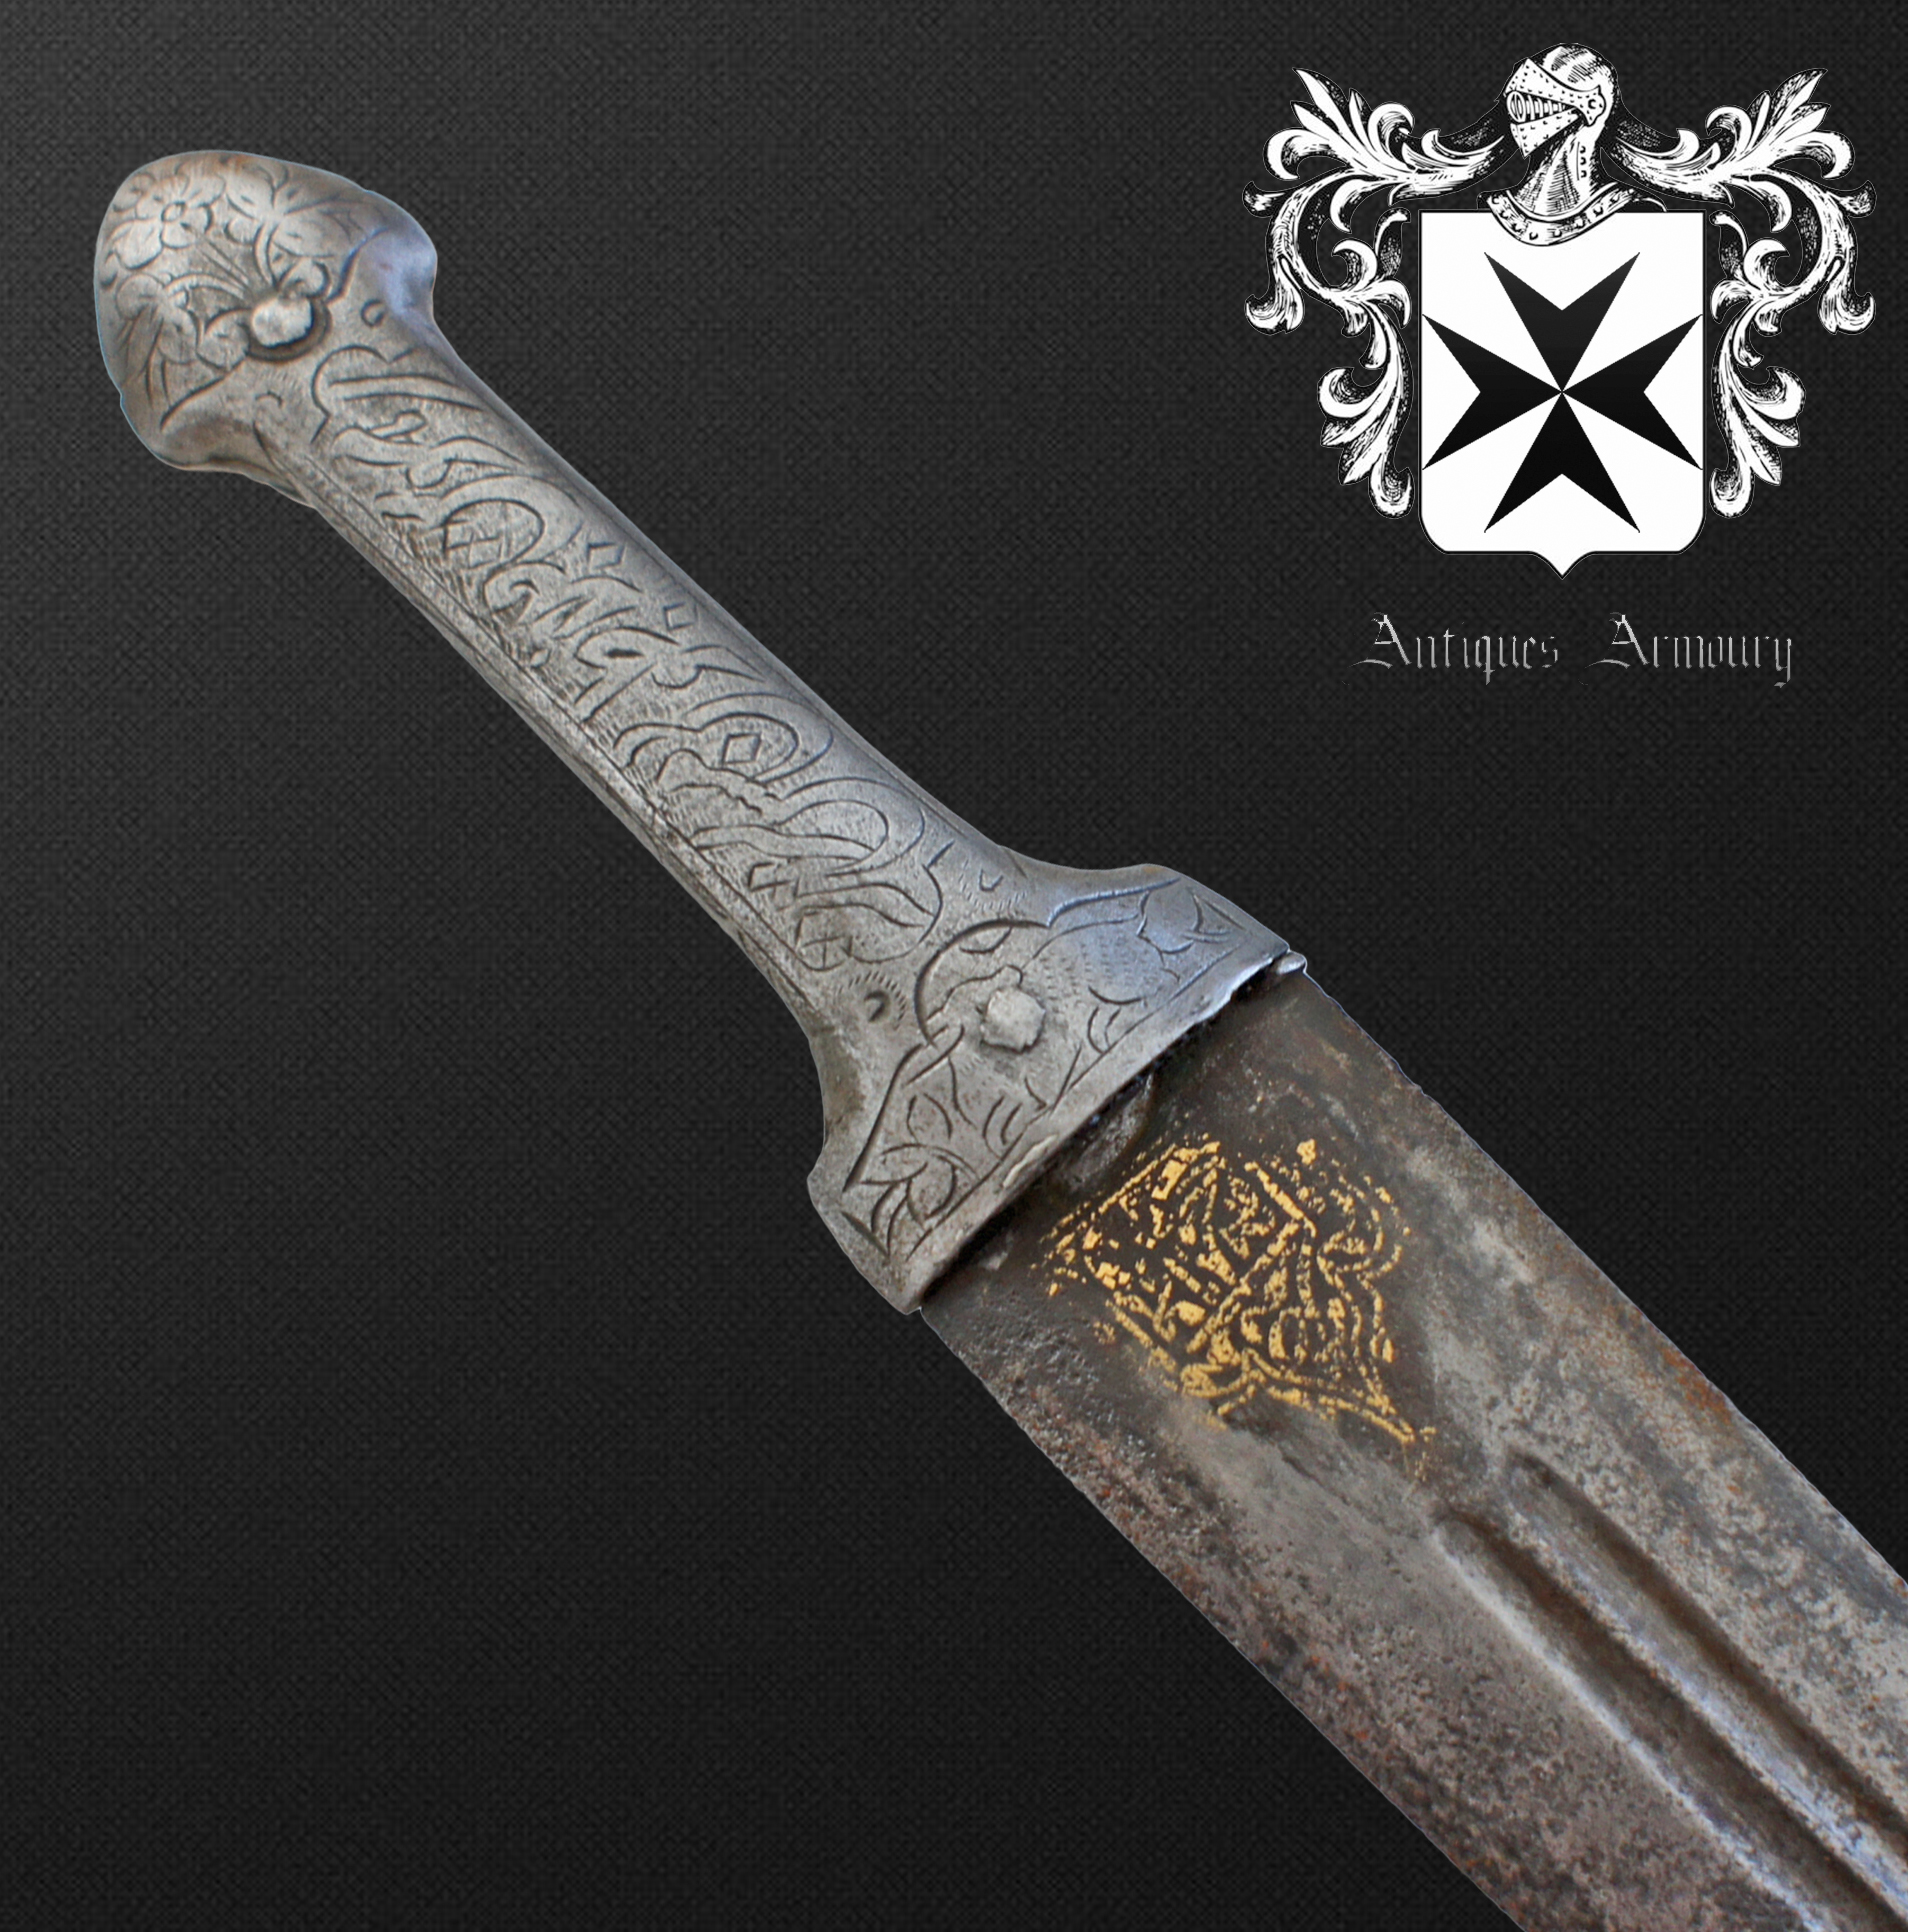 Fine Antique Arms And Armour For Sale 18th